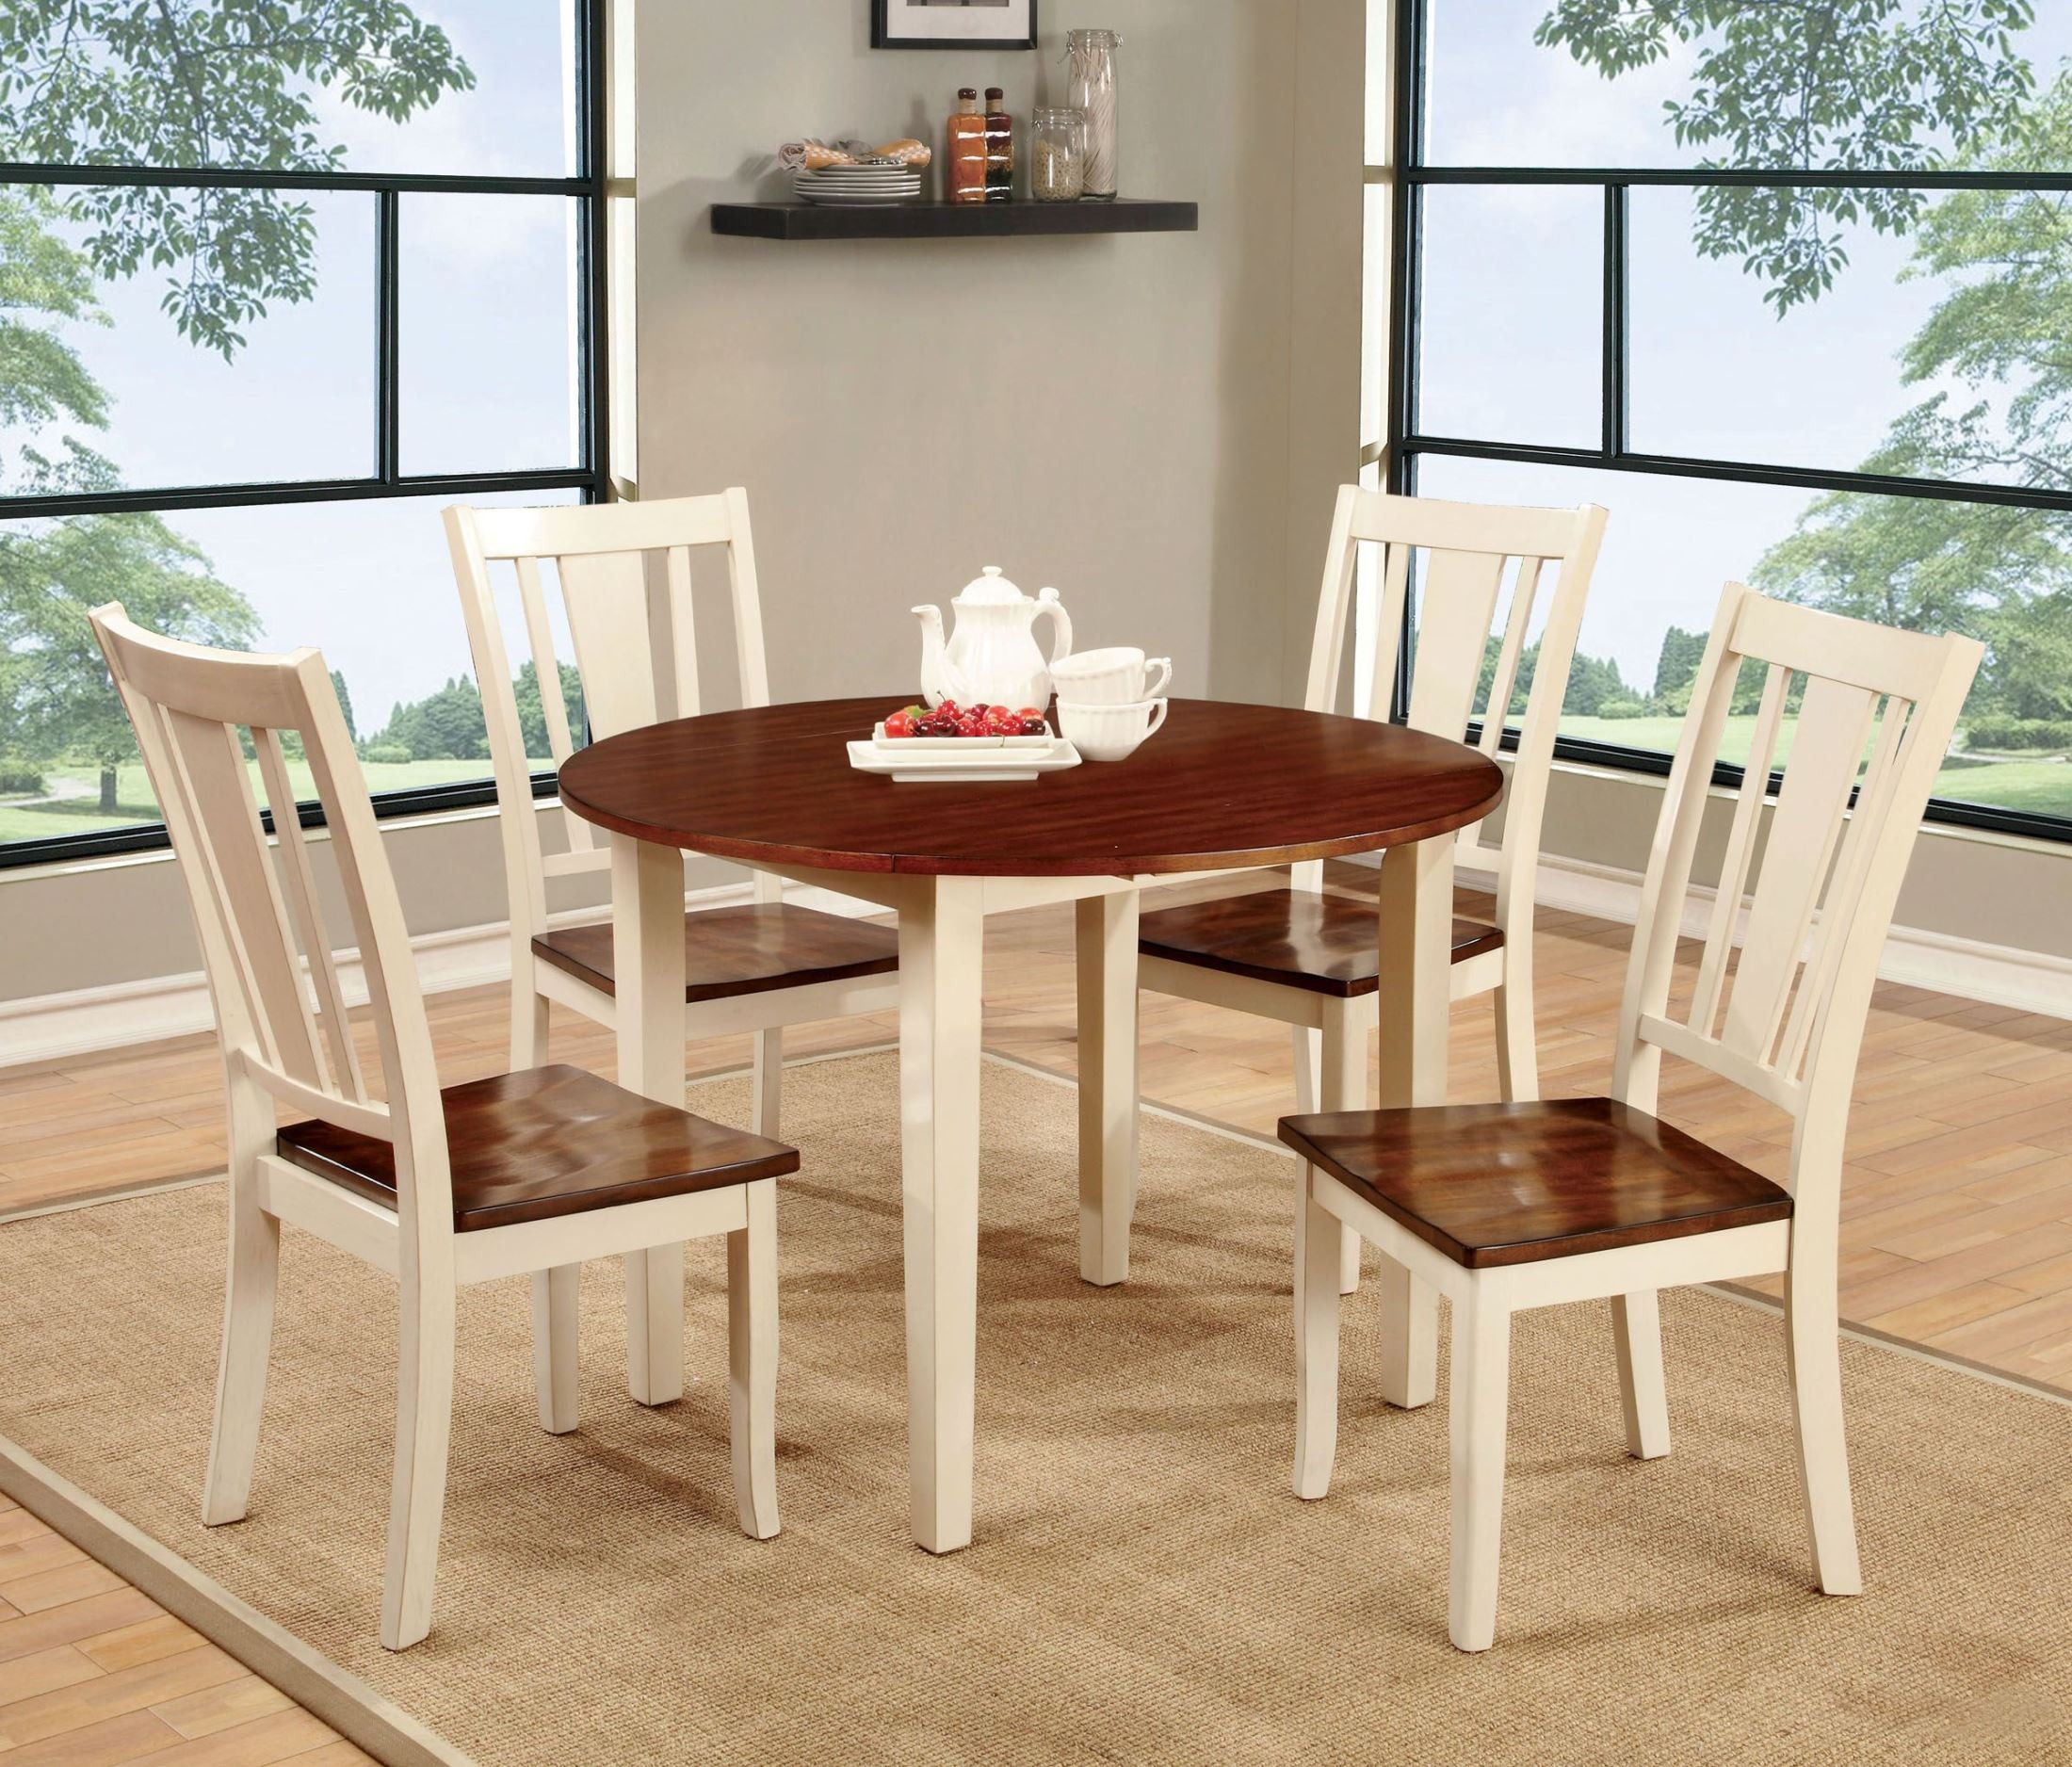 Dover II Vintage White and Cherry Drop Leaf Round Dining  : cm3326wc rt from colemanfurniture.com size 2200 x 1876 jpeg 840kB